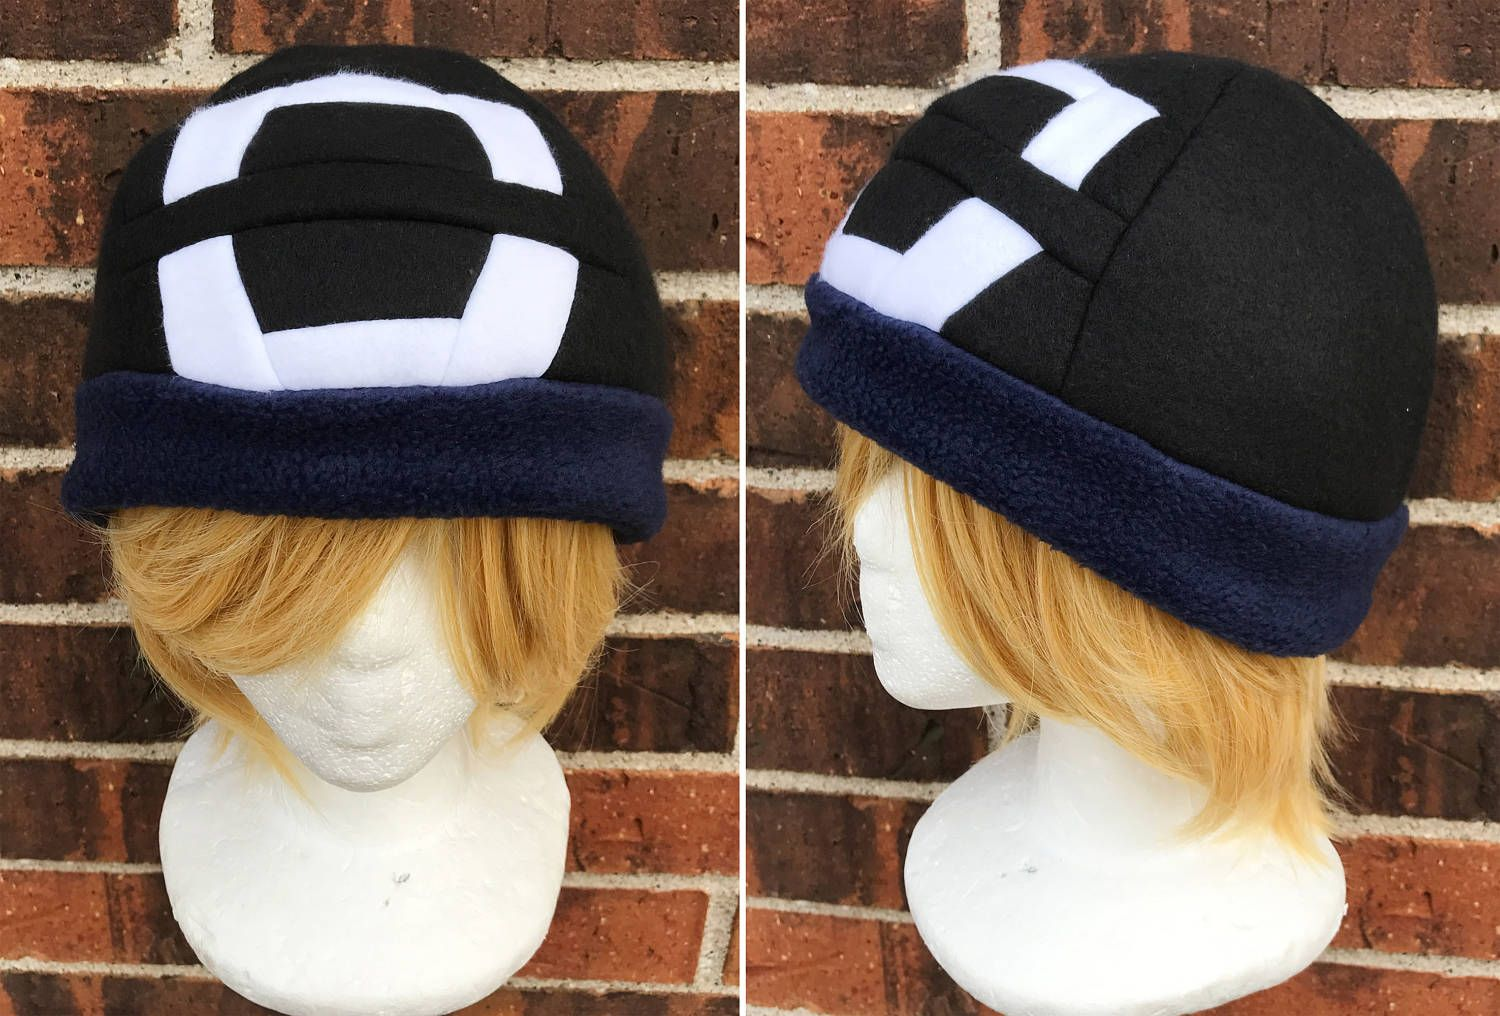 ed4783d77f8955 Pokemon Sun and Moon Male or Boy Version Trainer Hat - Fleece Hat Adult,  Teen, Kid - A winter, nerdy, geekery gift! by Akiseo on Etsy